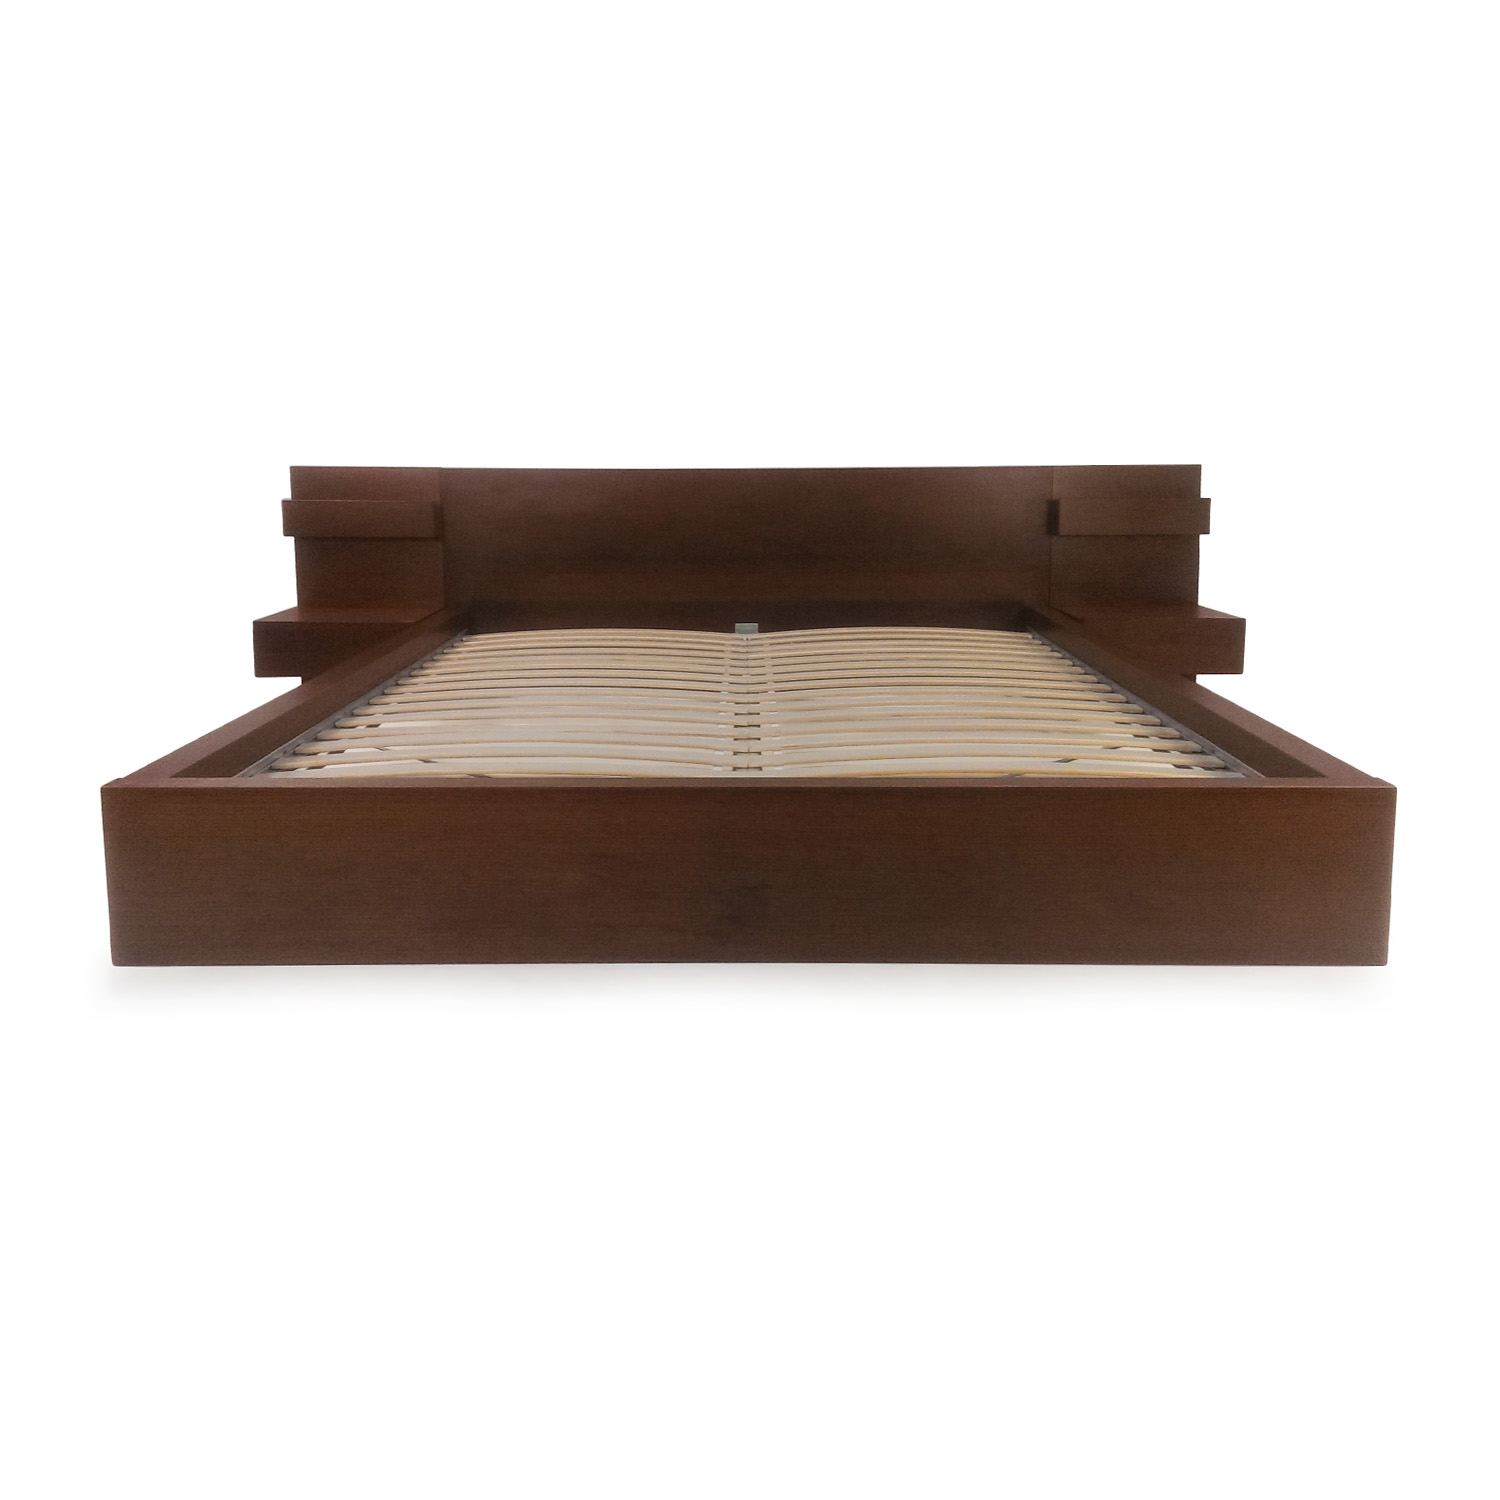 81 Off Ikea King Bed Frame With Headboard Beds,Best Time To Rent A House